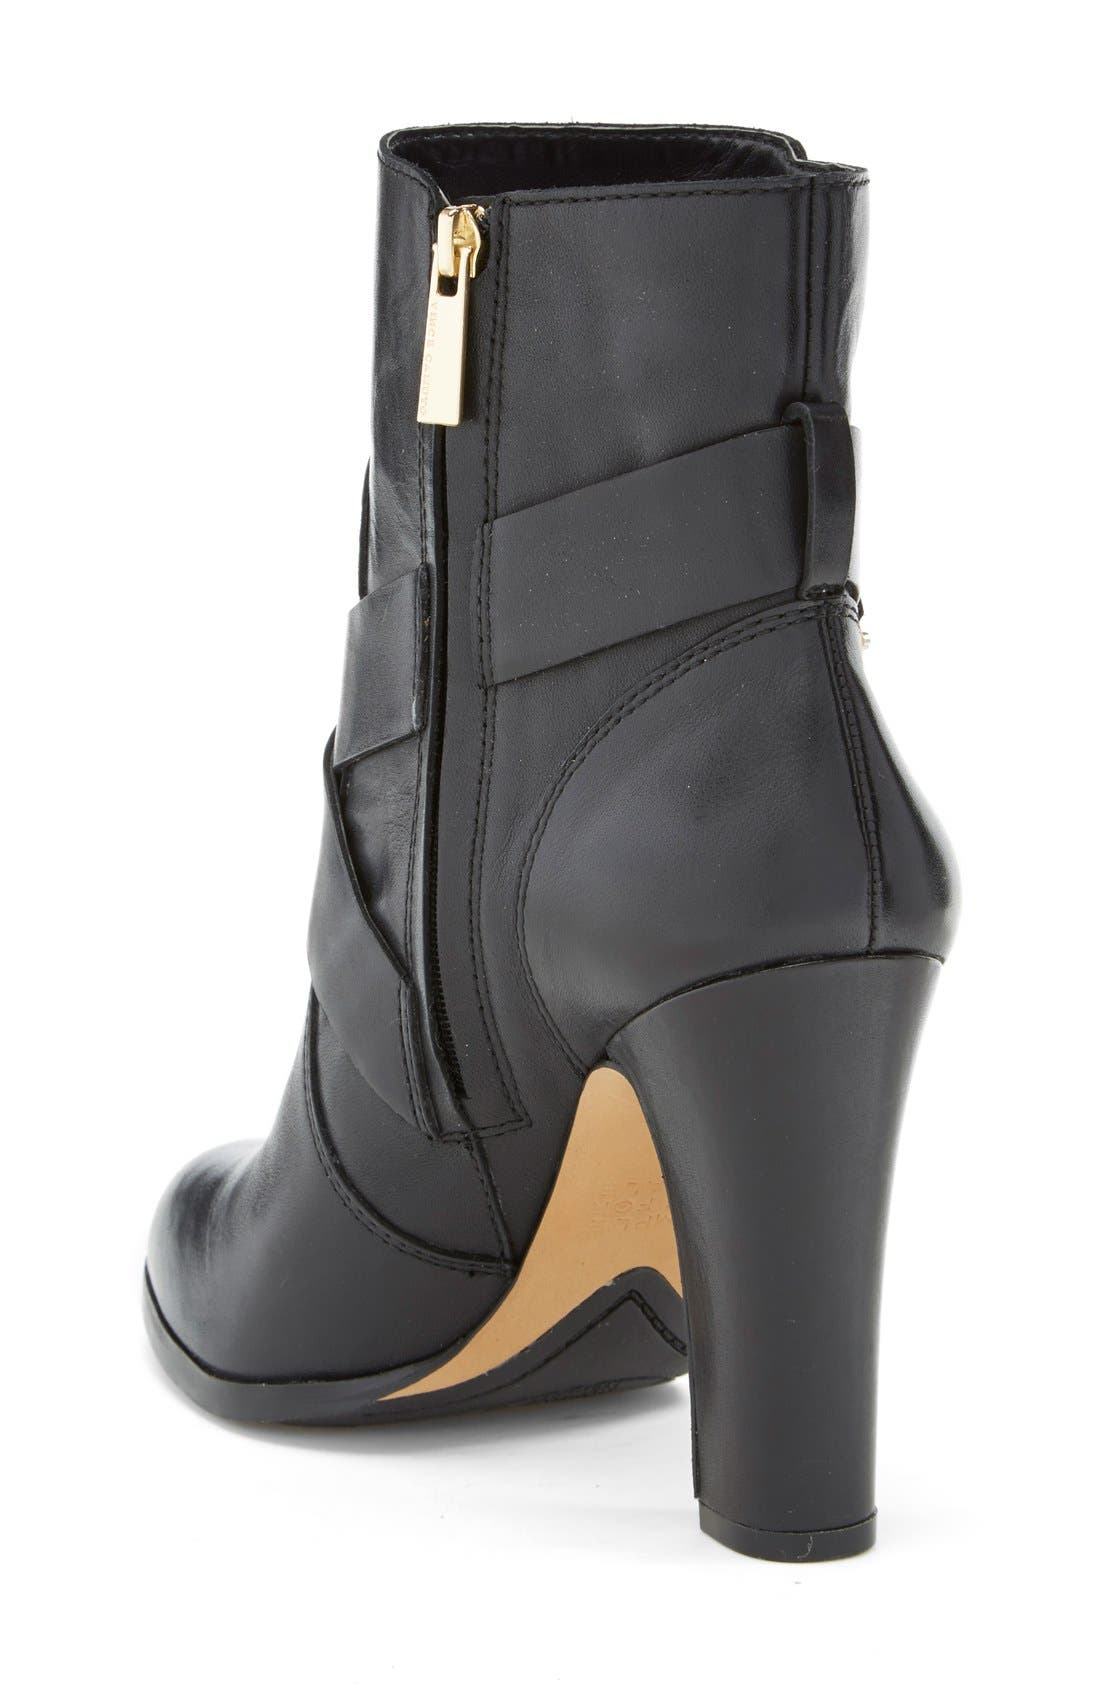 'Connolly' Belted Boot,                             Alternate thumbnail 2, color,                             Black Leather